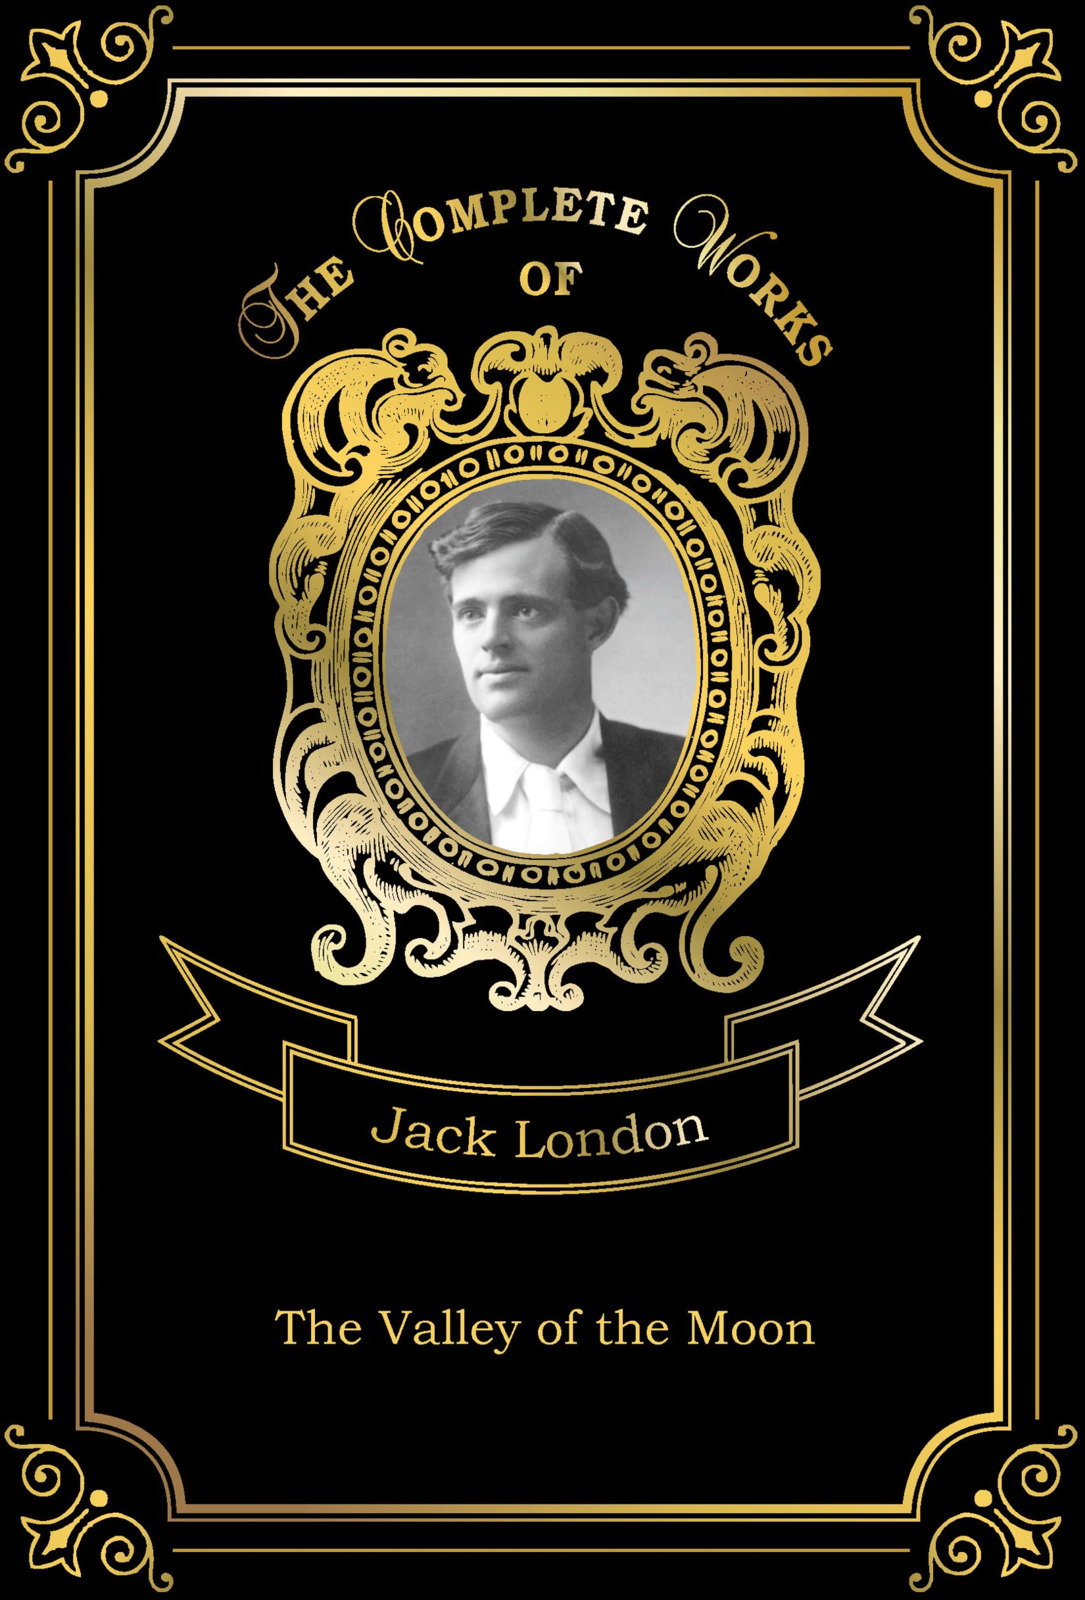 Jack London The Valley of the Moon efficiency of pig farm production in the republic of macedonia